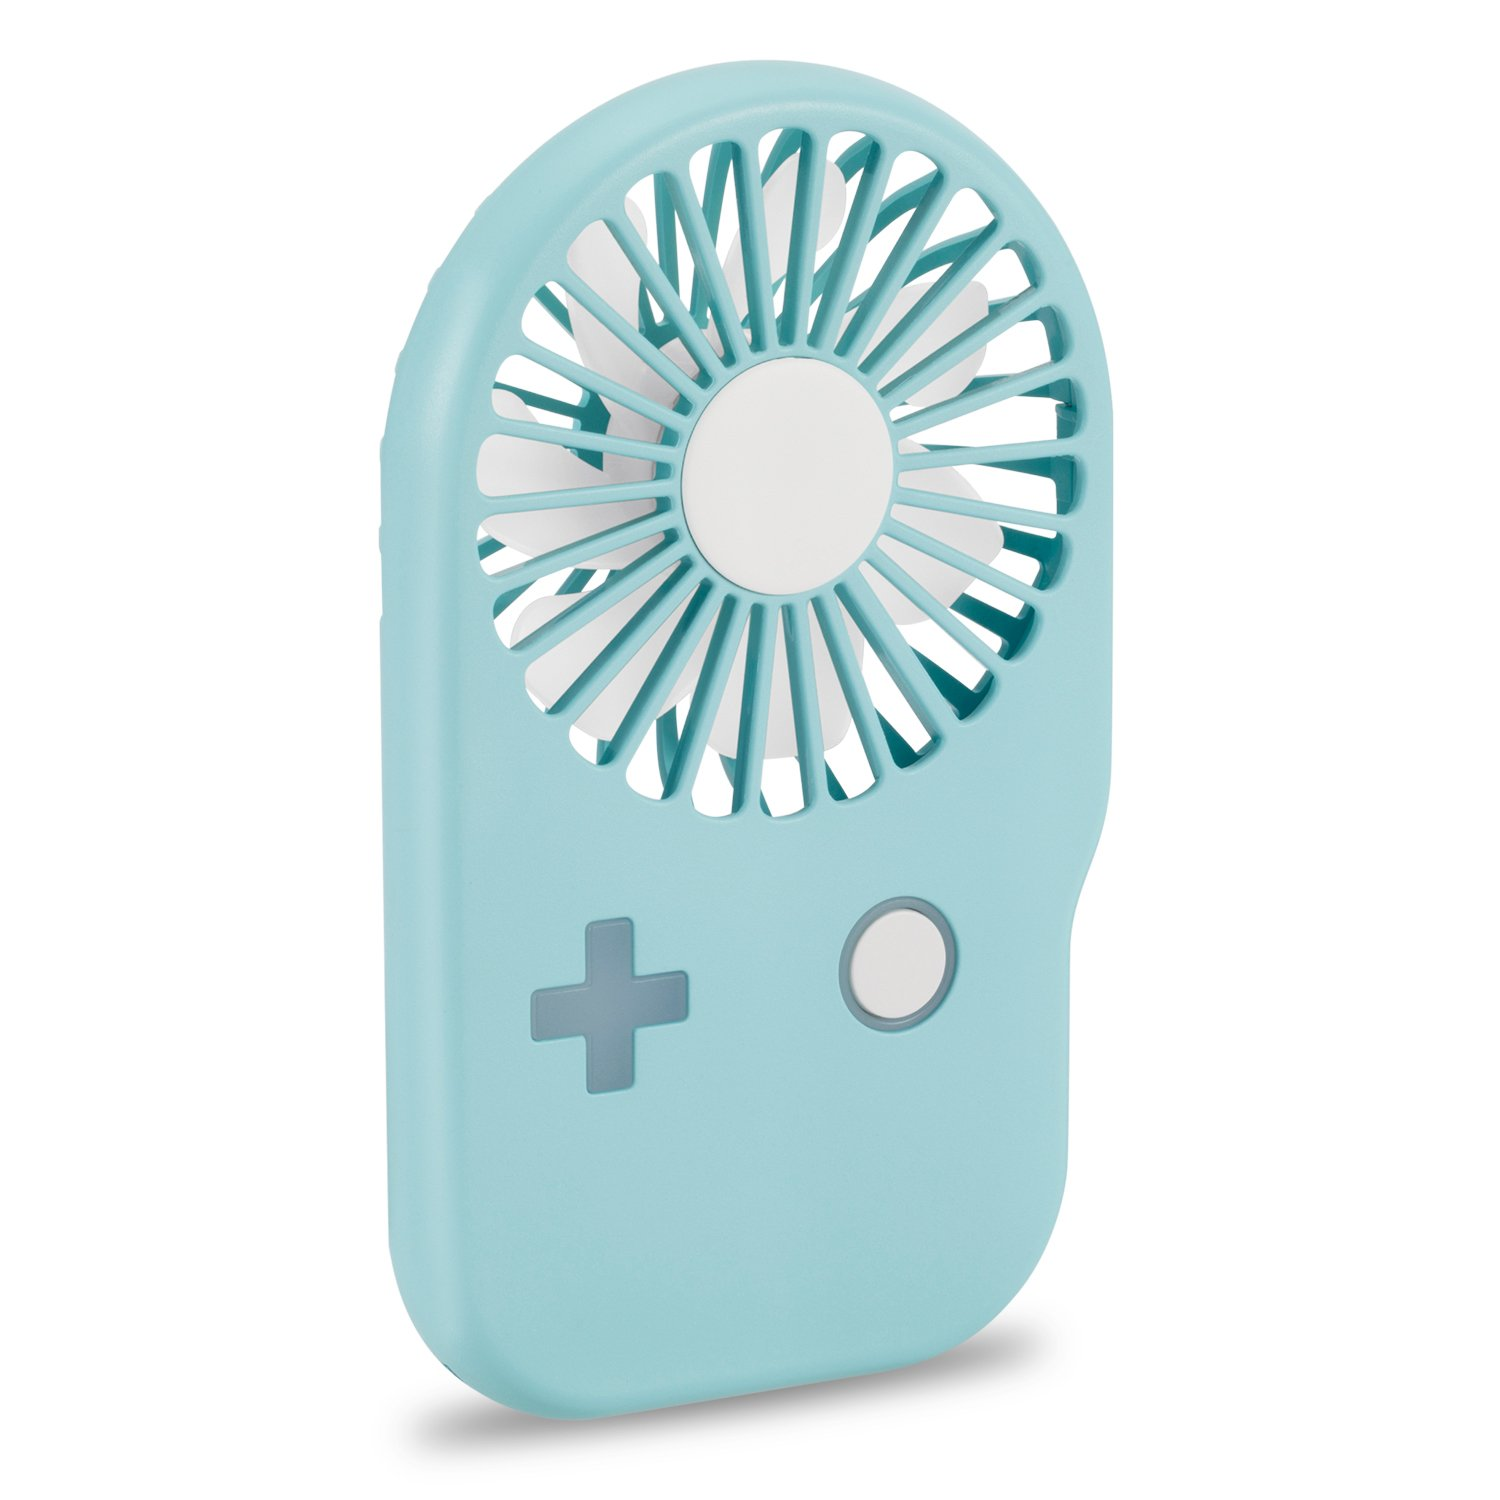 Aluan Portable Fan Mini Handheld Fan Powerful Speed Adjustable Pocket Personal Fan USB Rechargeable Cooling for Kids Girls Woman Home Office Outdoor Travel Eyelash Fan, Blue